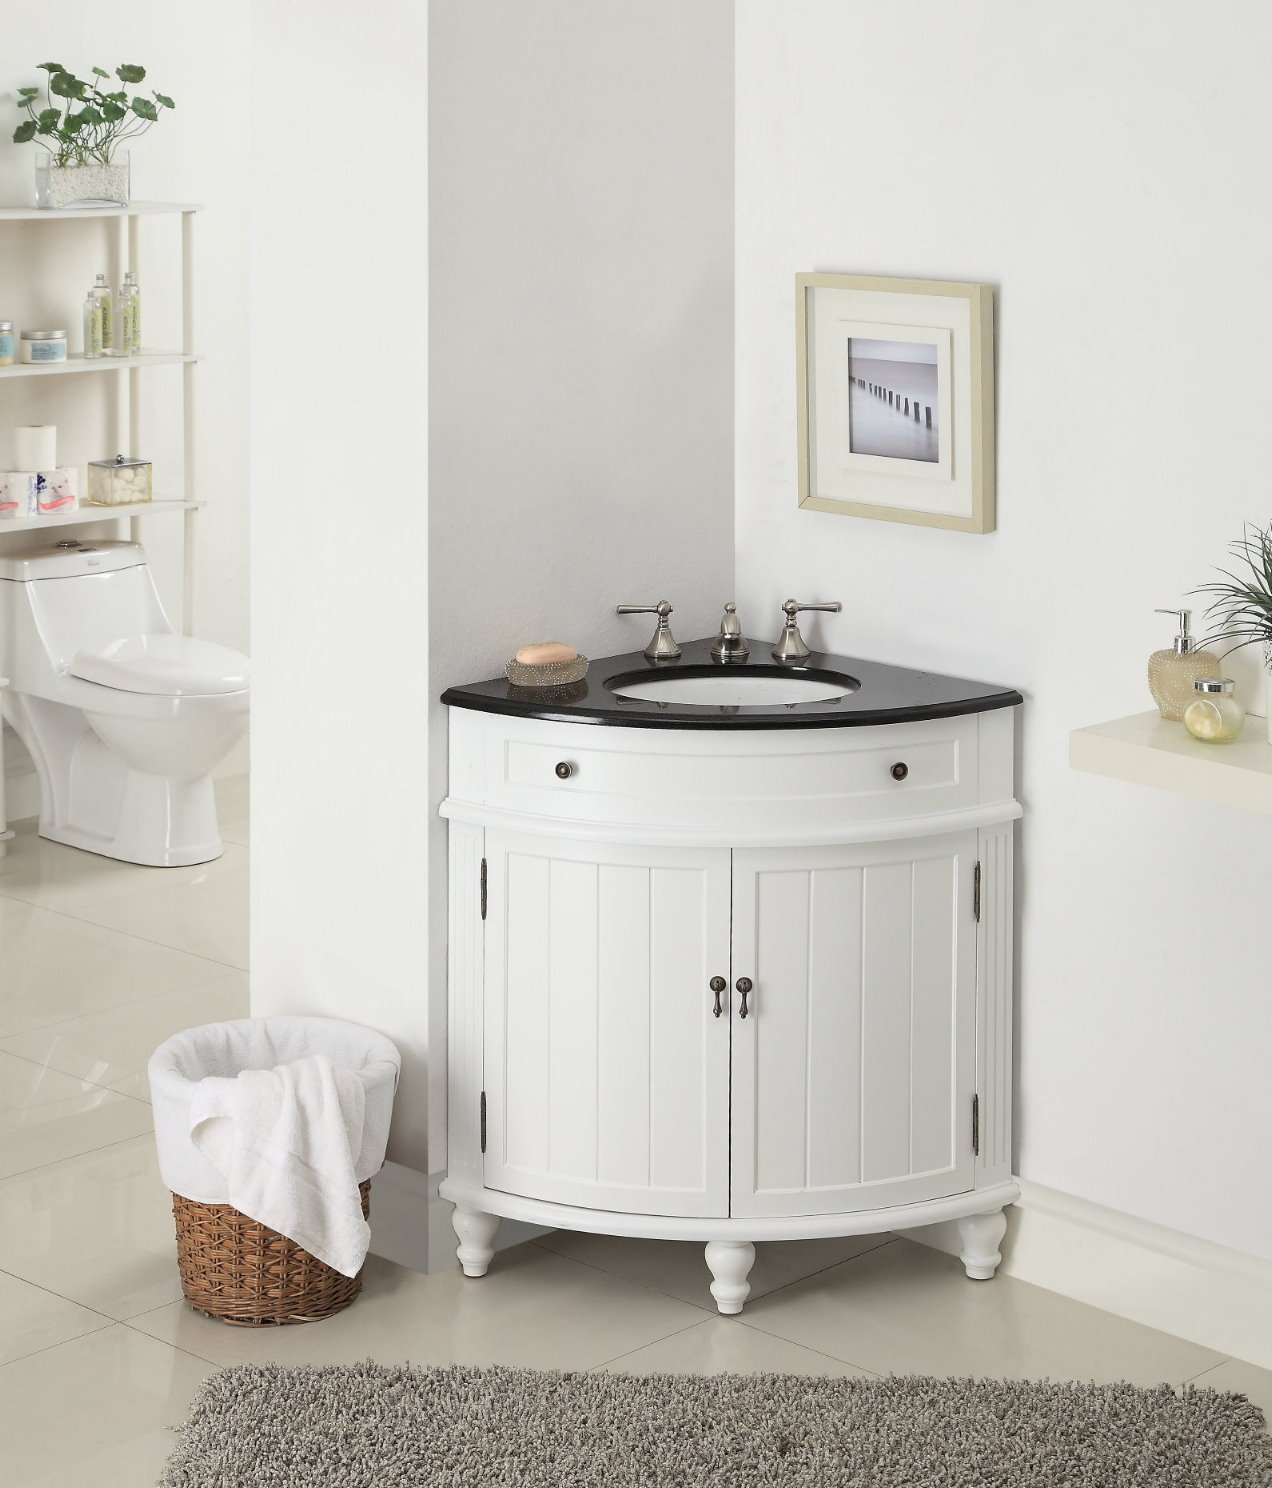 ... Adelina 24 inch Corner Antique Bathroom Vanity White Finish - Adelina 24 Inch Corner Antique Bathroom Vanity White Wood Finish